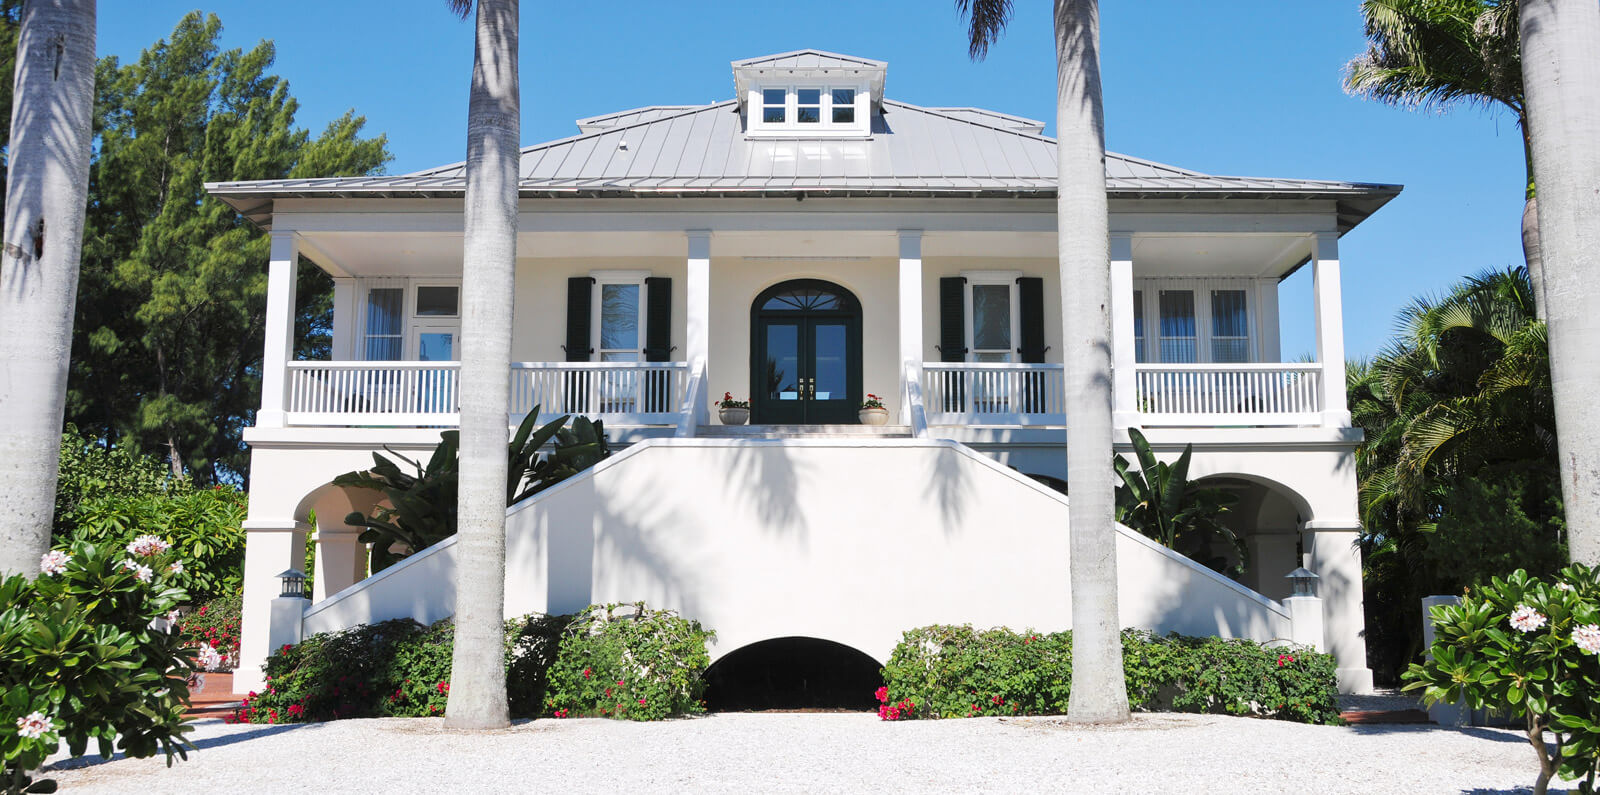 A beautiful white home with a metal roof and palms in the front yard